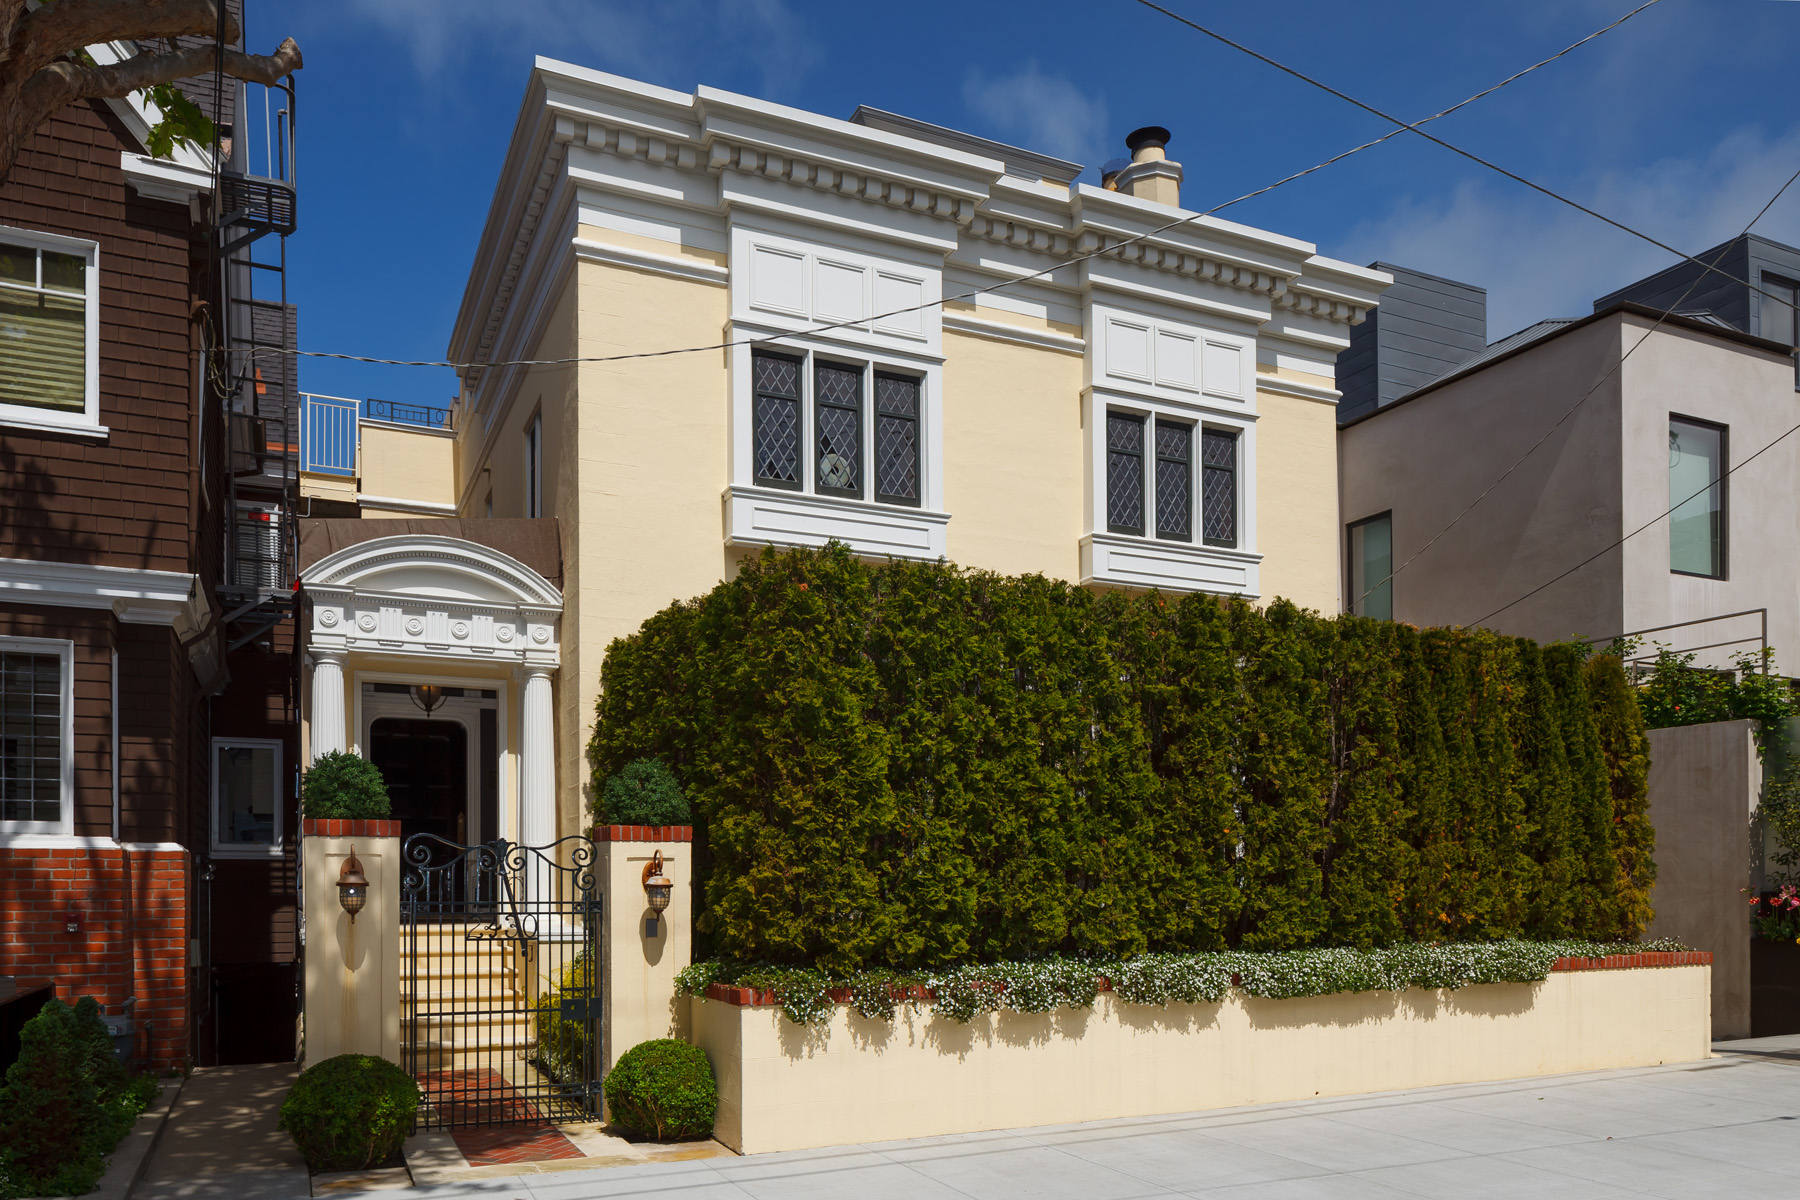 Pacific heights View - 2430 Broadway - $11,000,000